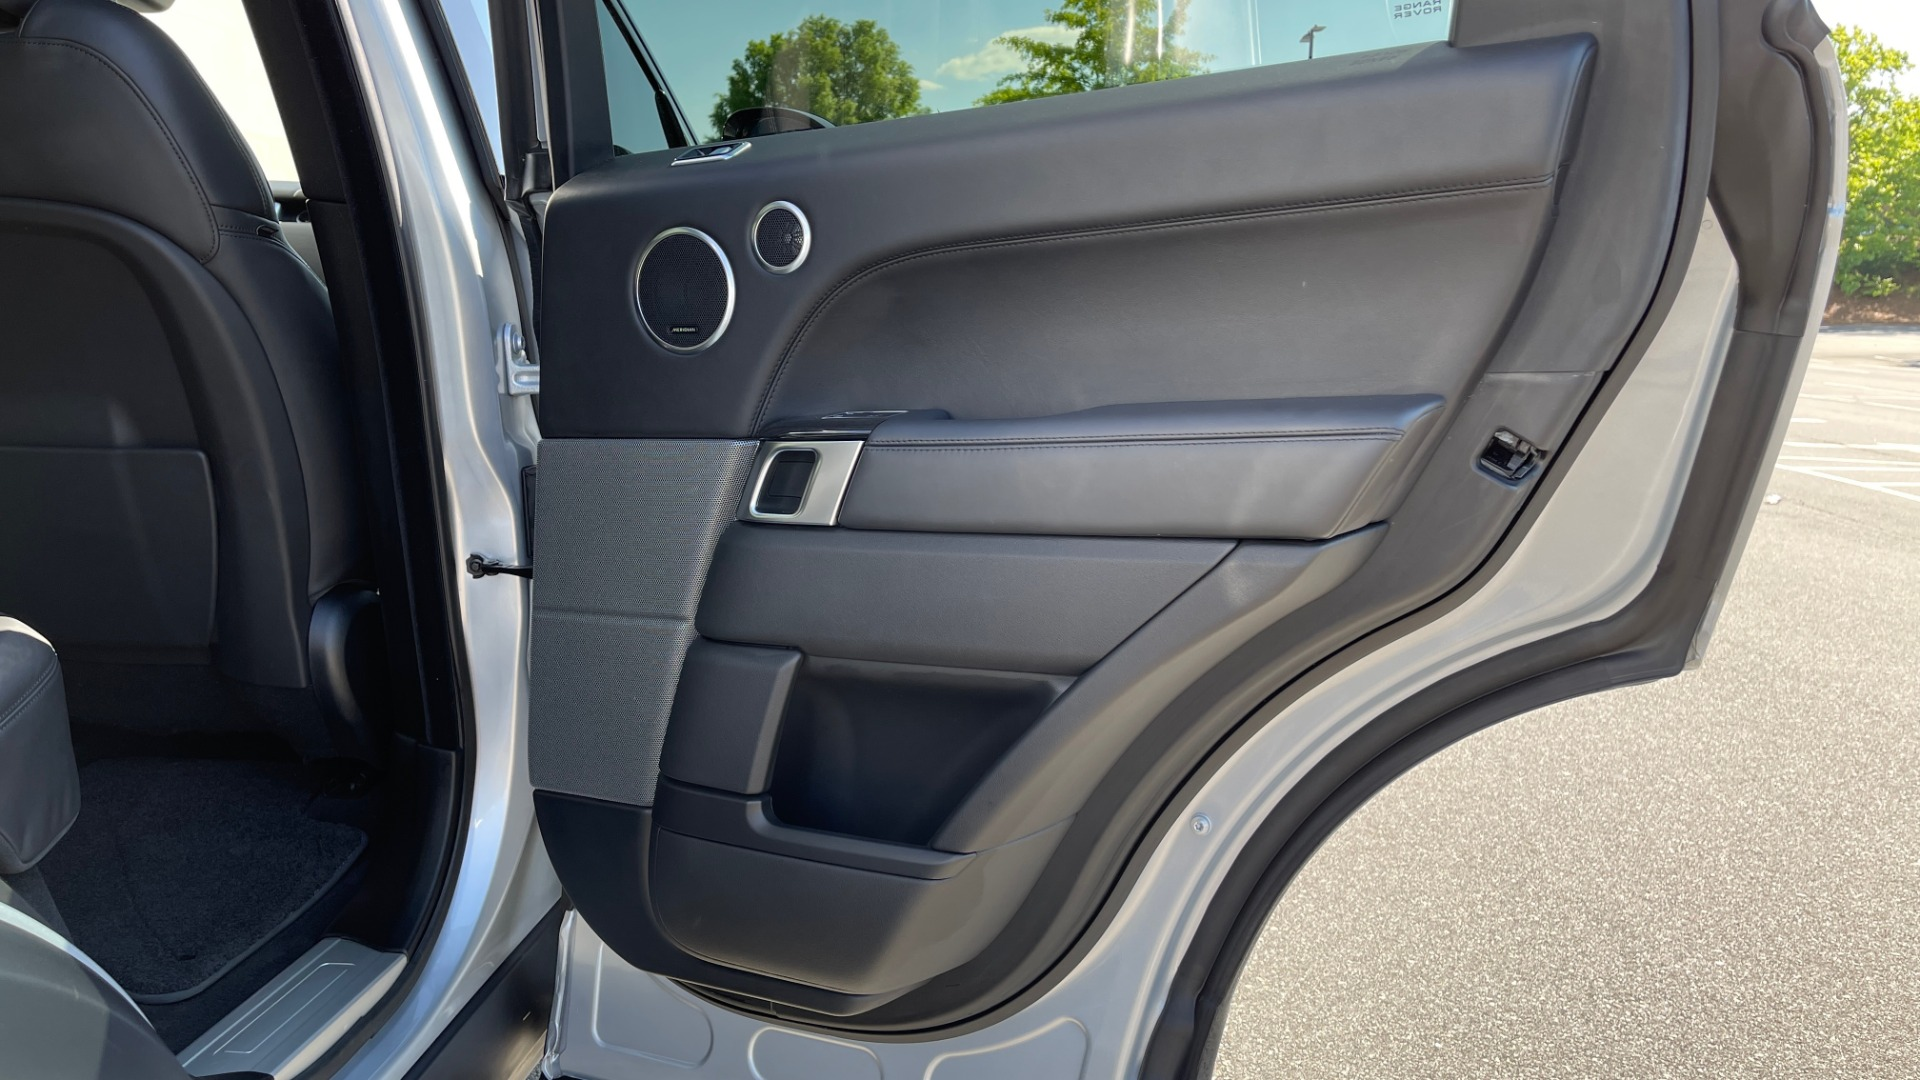 Used 2019 Land Rover RANGE ROVER SPORT HSE DYNAMIC / 3.0L SC V6 / 8-SPD / APPLE / NAV / SUNROOF / REARVIEW for sale Sold at Formula Imports in Charlotte NC 28227 80